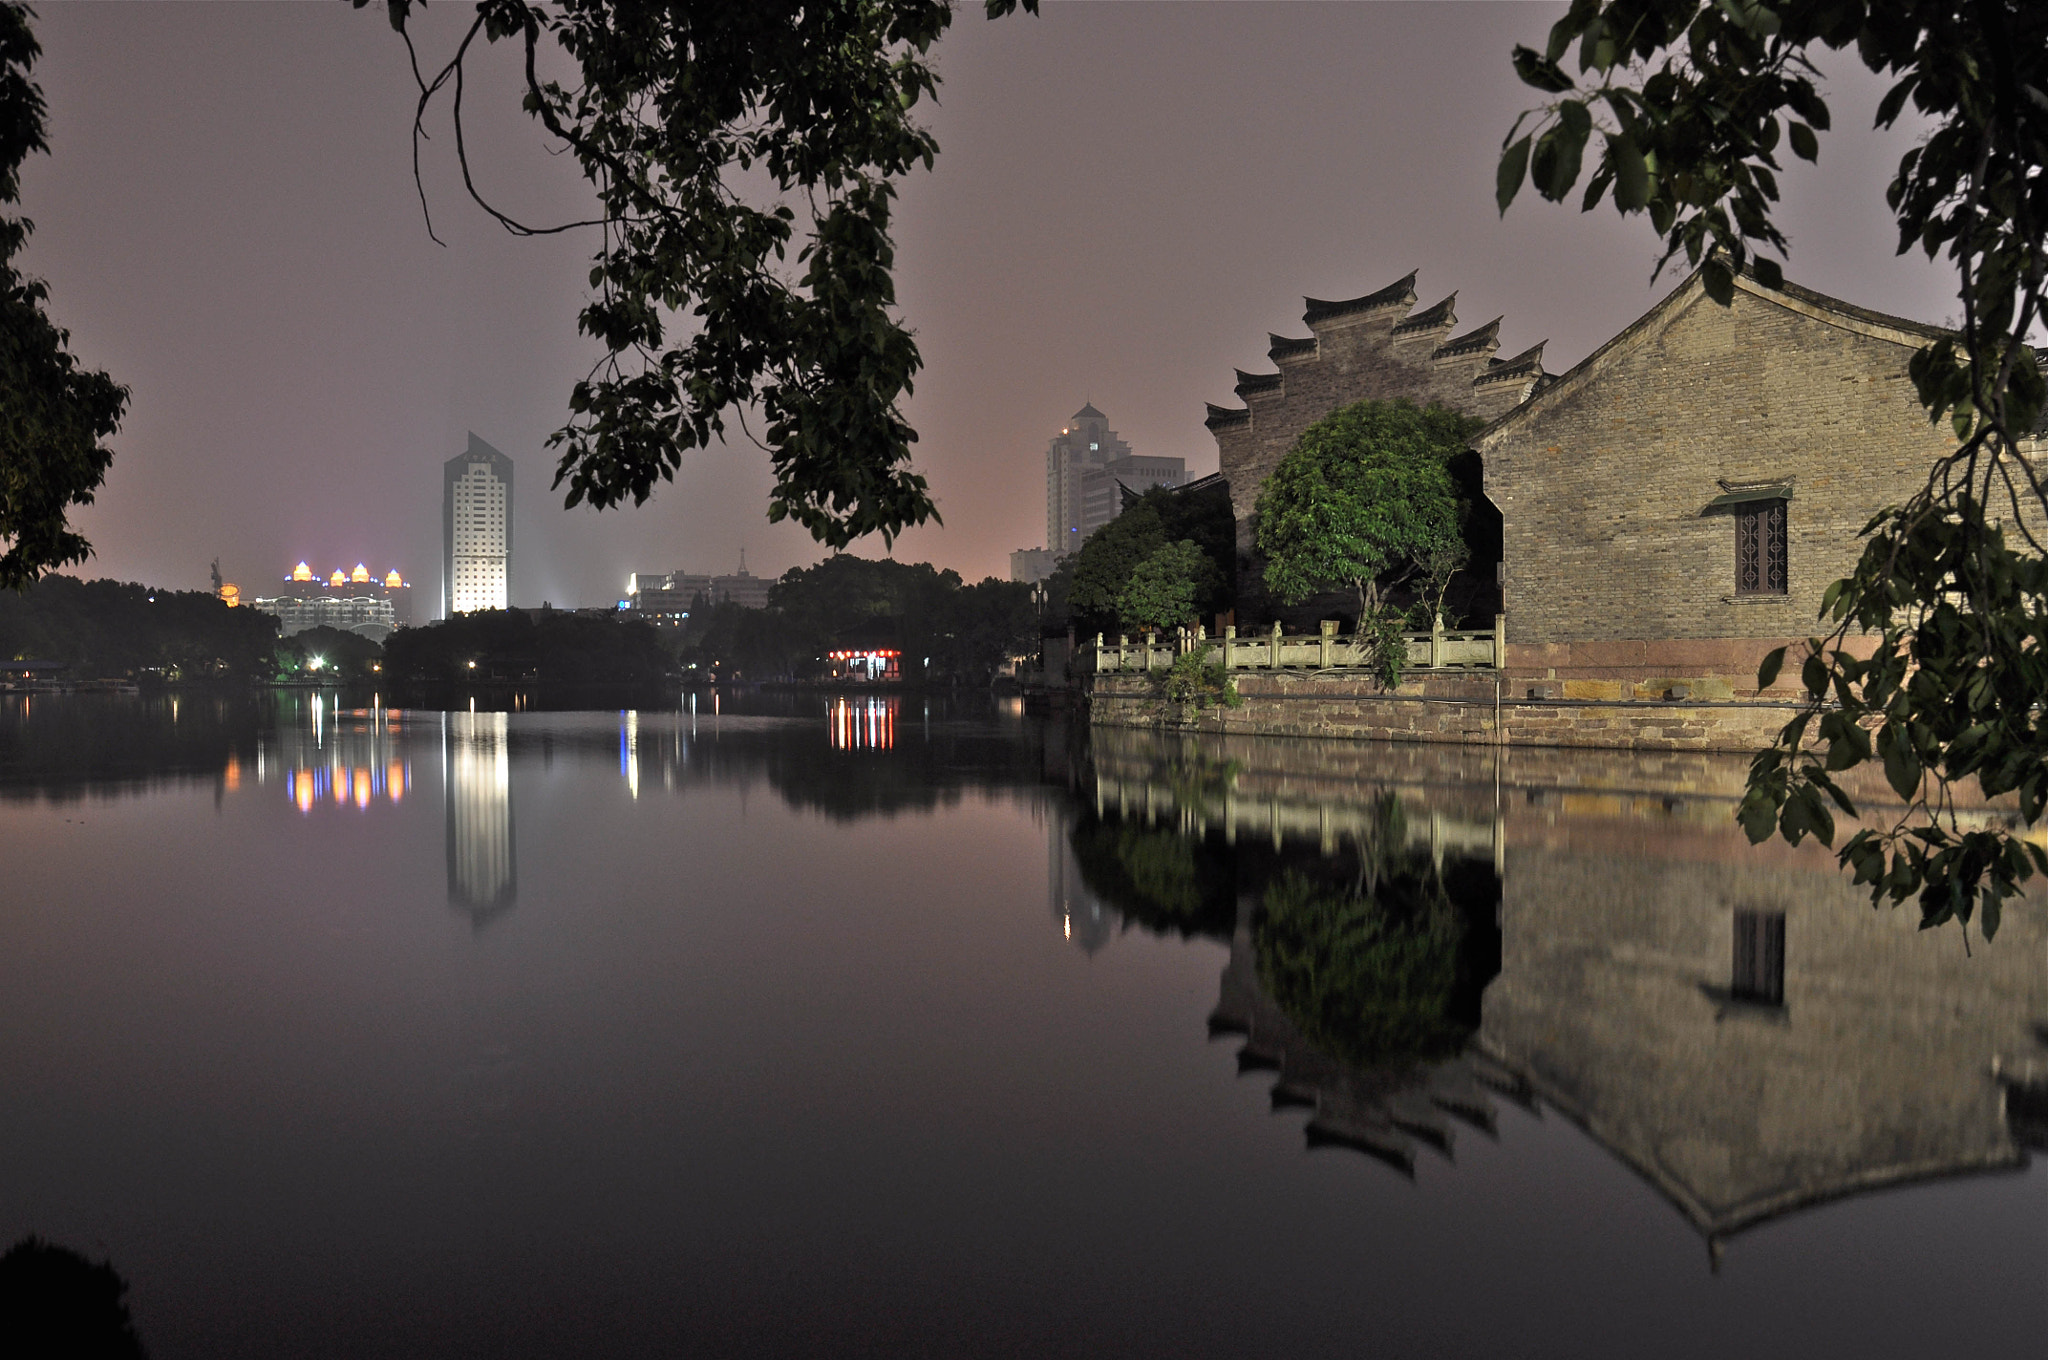 Photograph Moon Lake Park, Ningbo, China by Poh Huay Suen on 500px